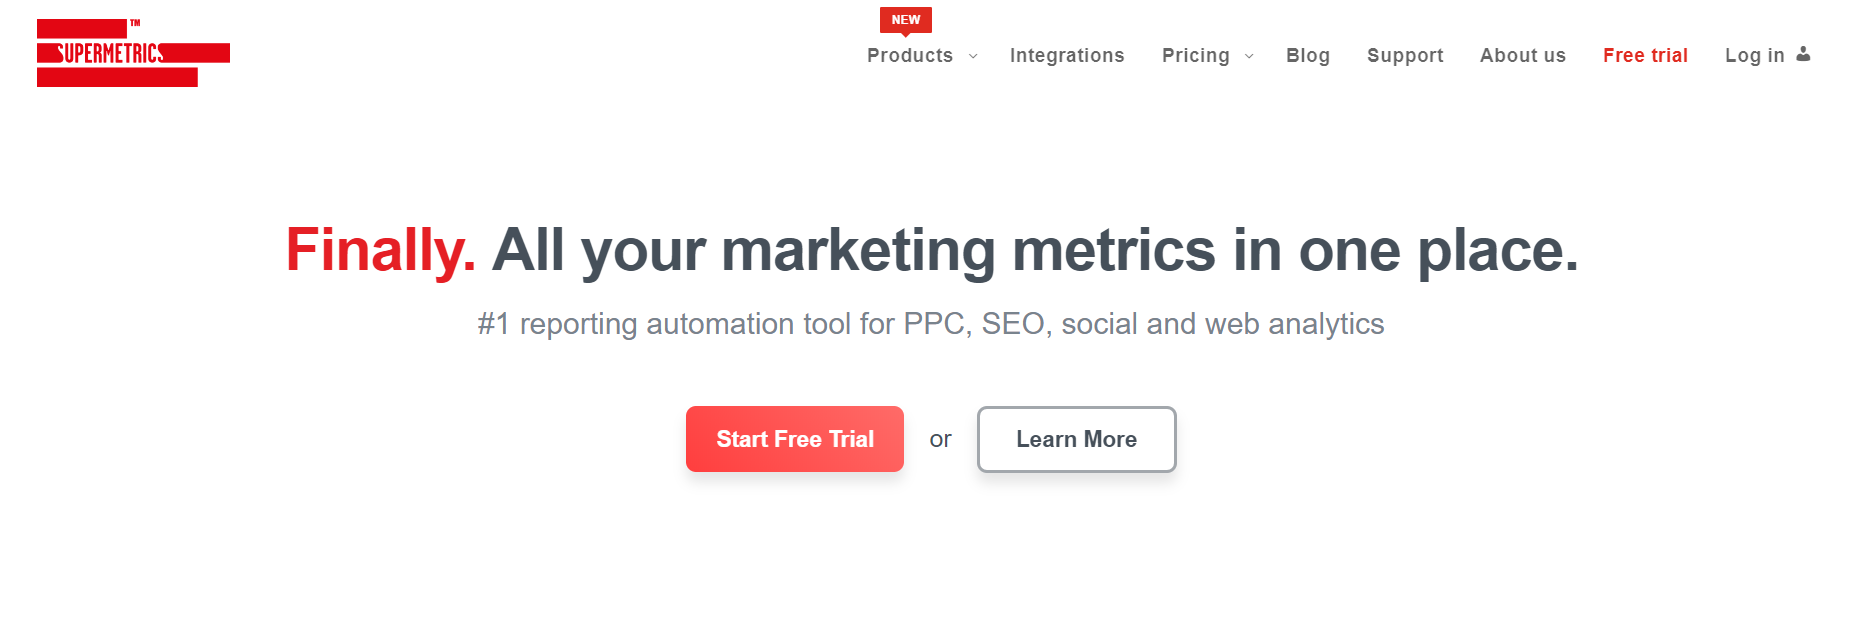 Best Conversion Rate Optimization Tools- Supermetrics